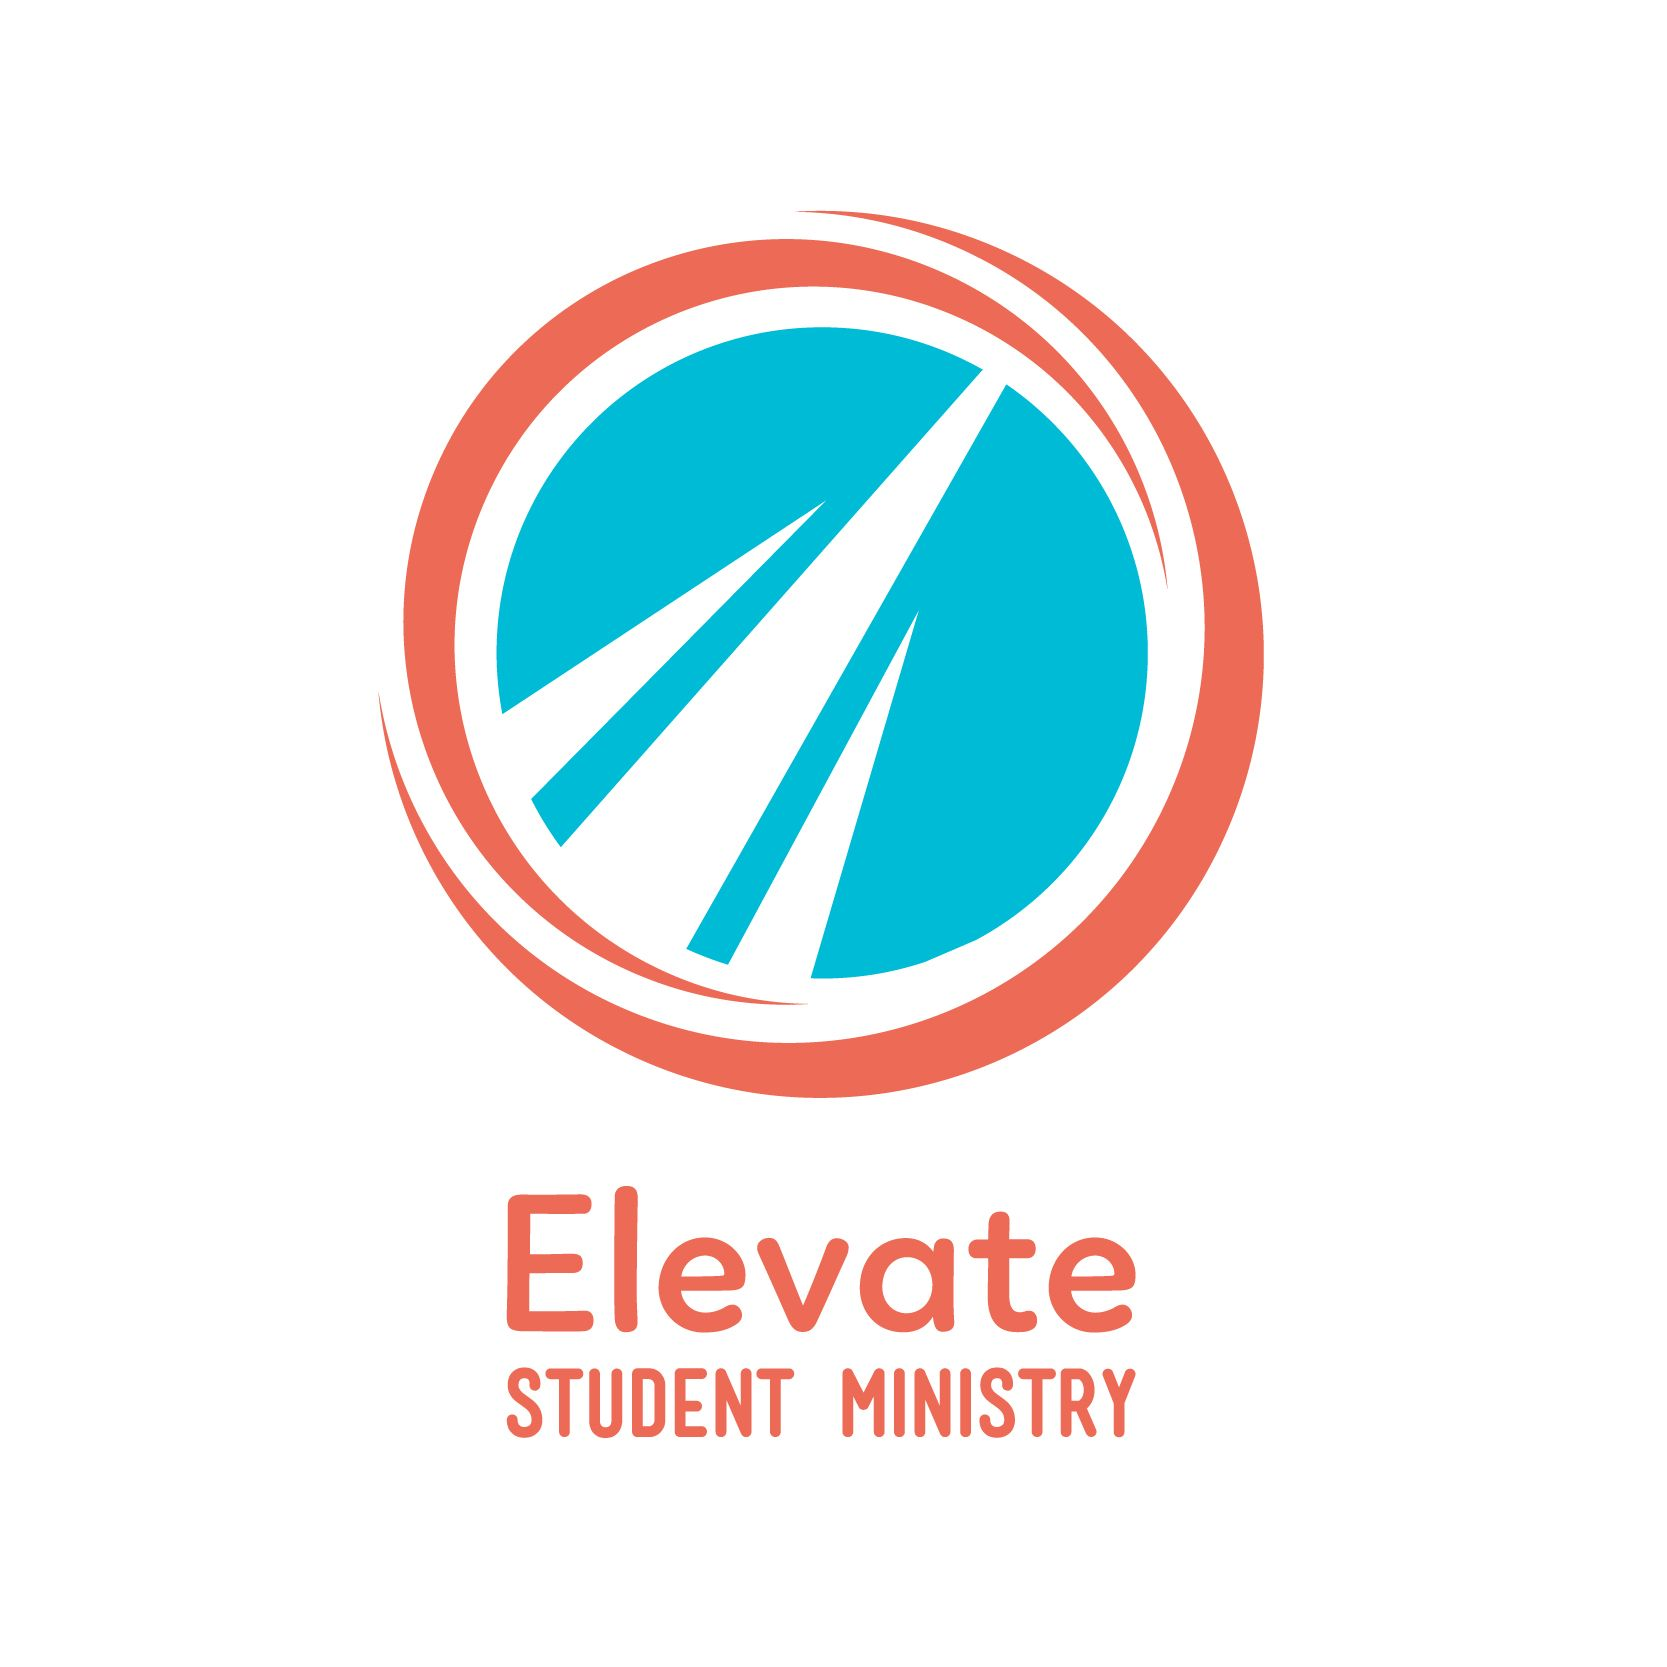 elevate student ministry youth group logos youth group logo rh pinterest ph youth group logo creator youth group logo creator free